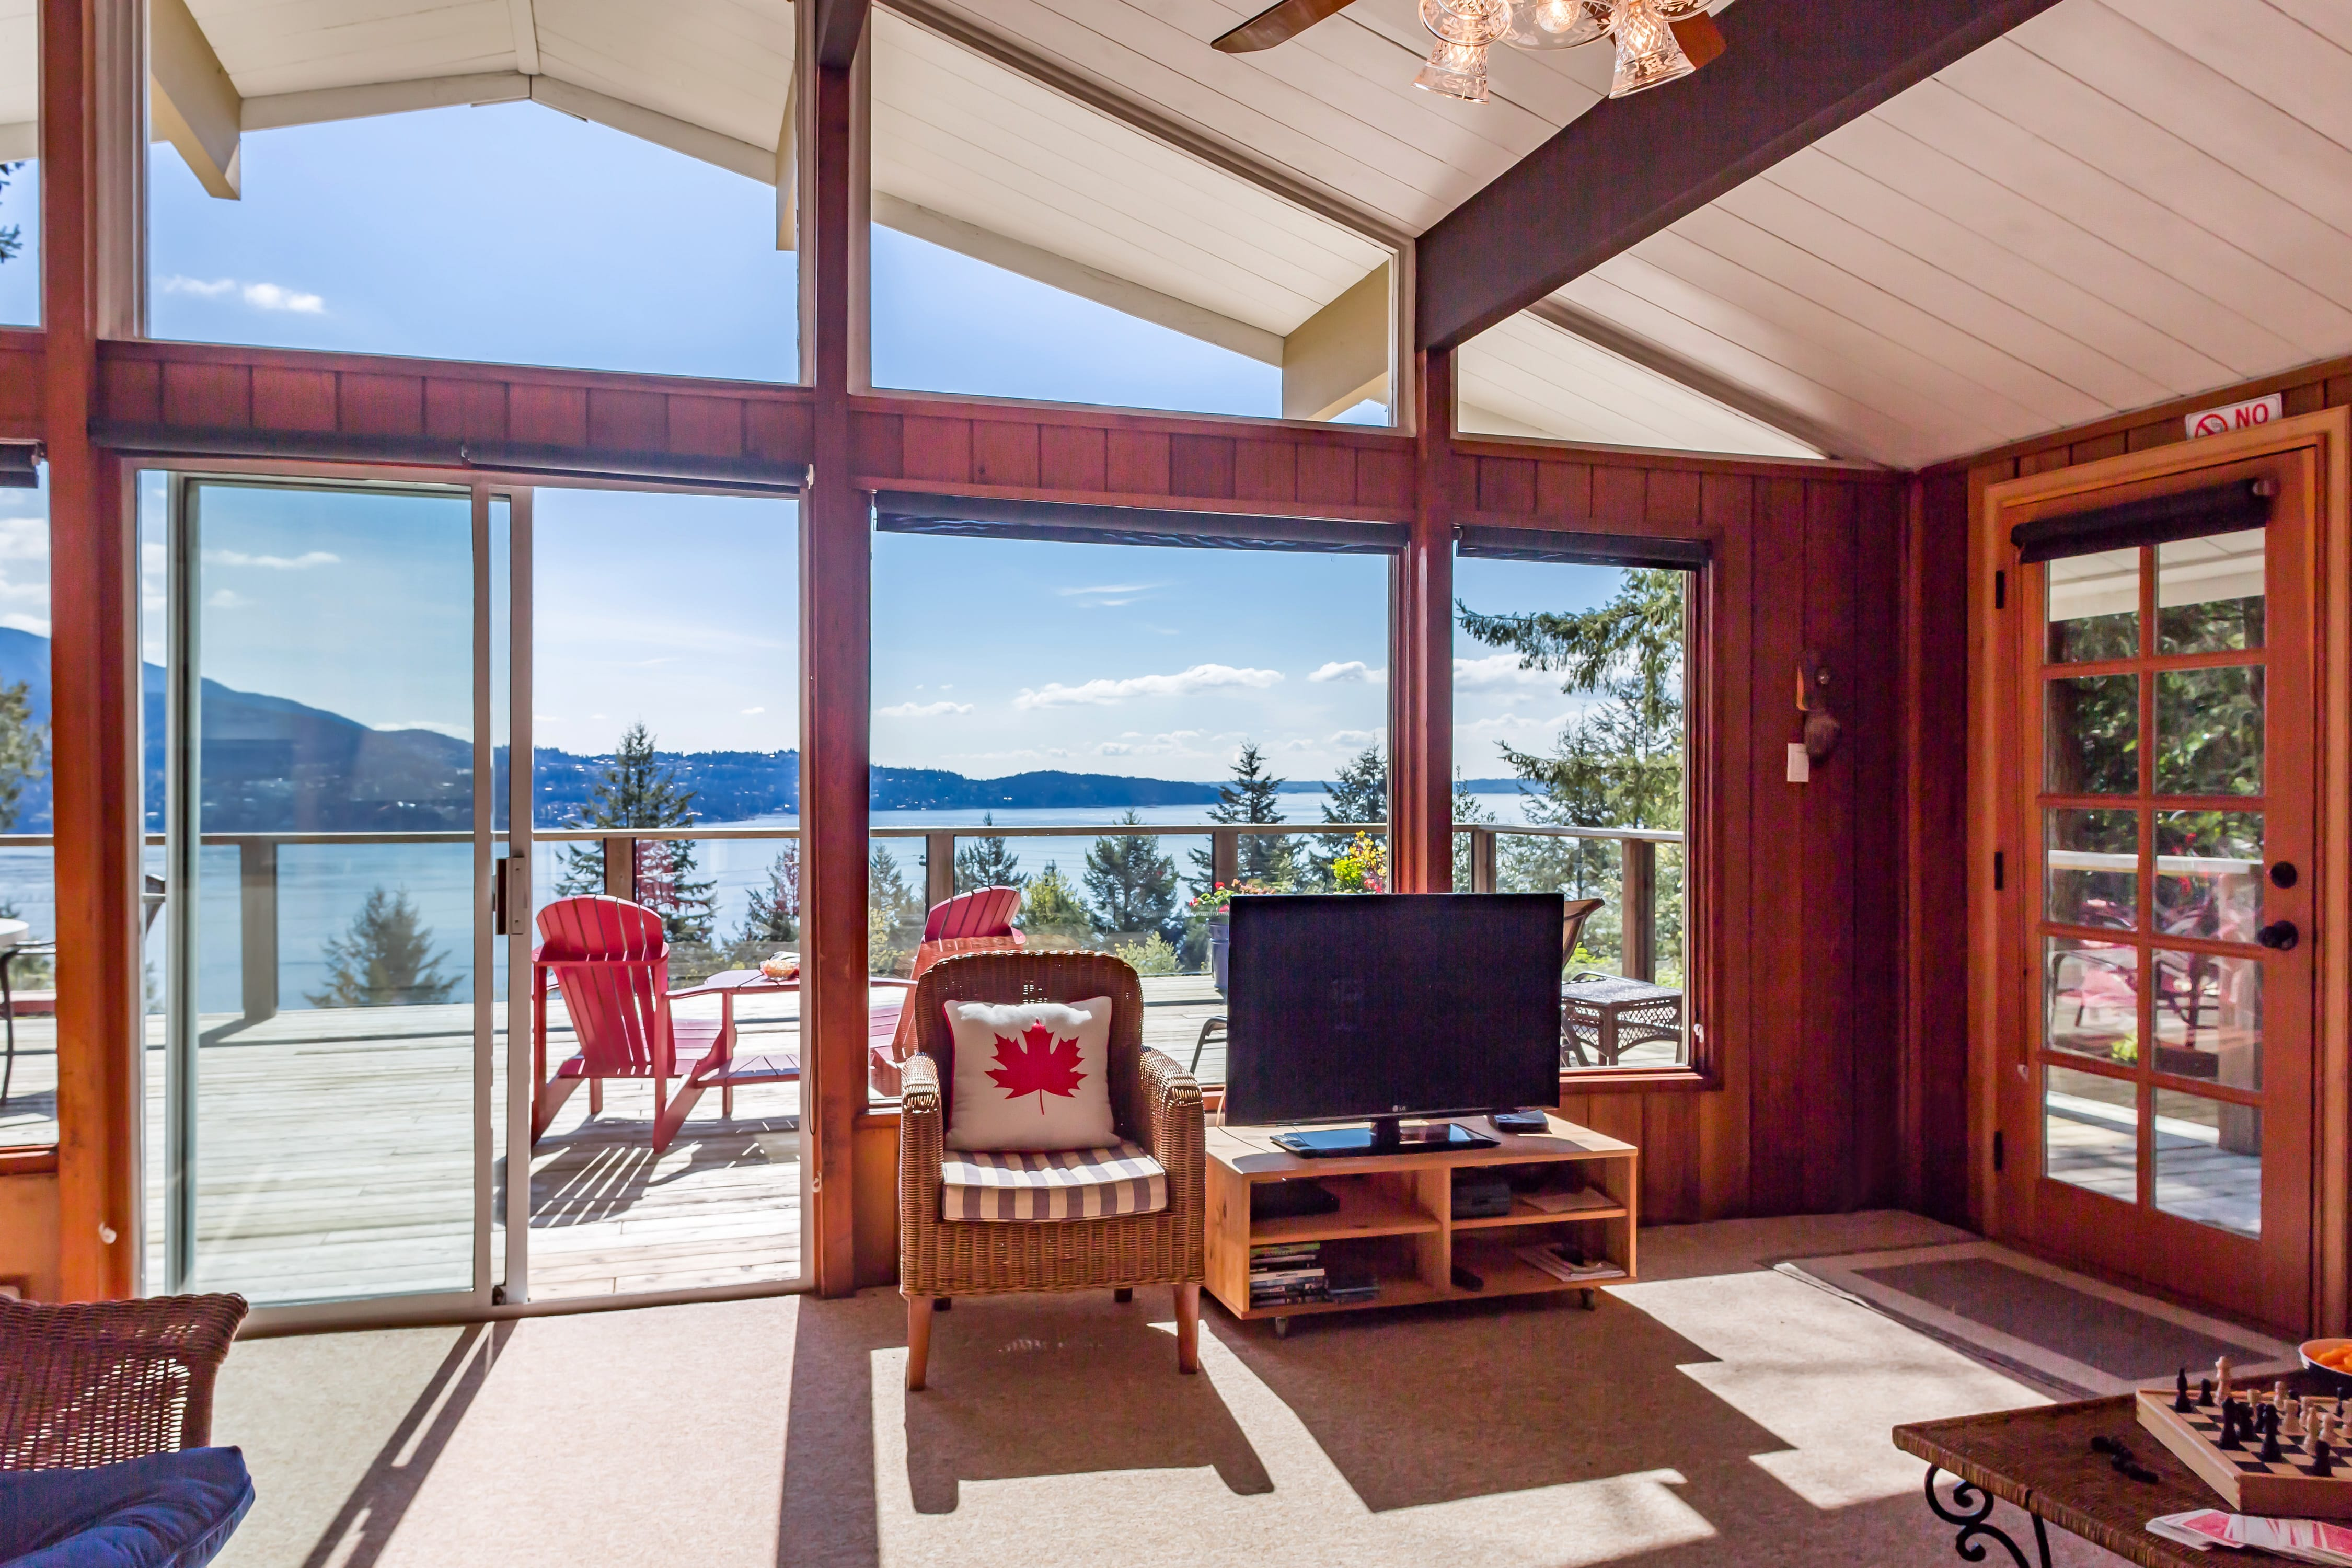 Evergreen-Living room with sunny panoramic views of ocean and decks